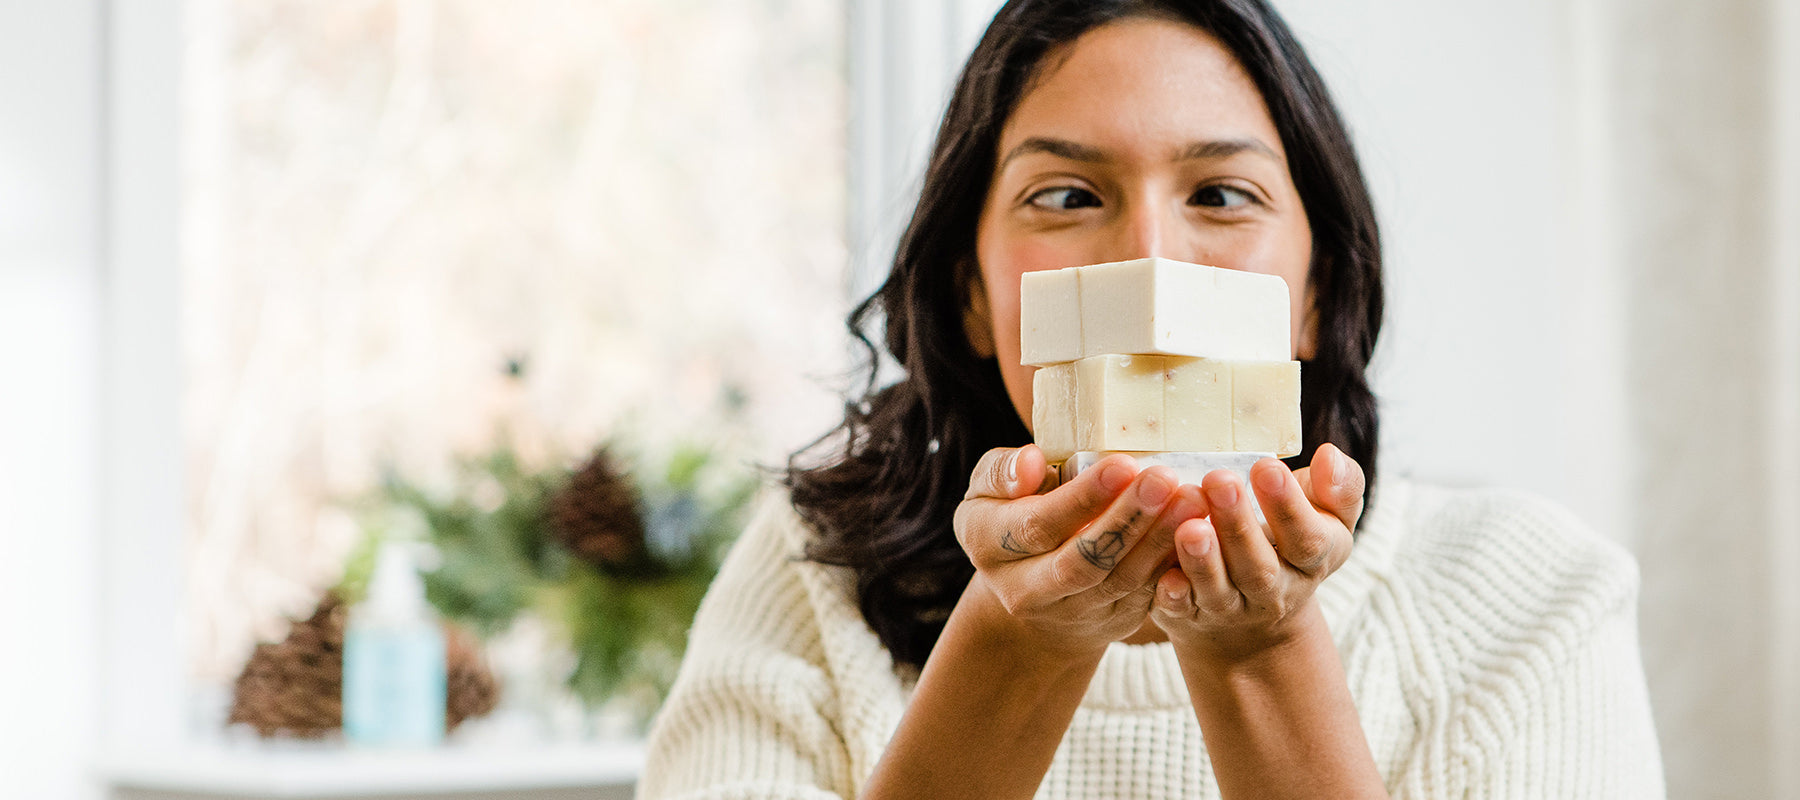 Image of a woman holding a stack of natural bar soap from Rocky Mountain Soap Company